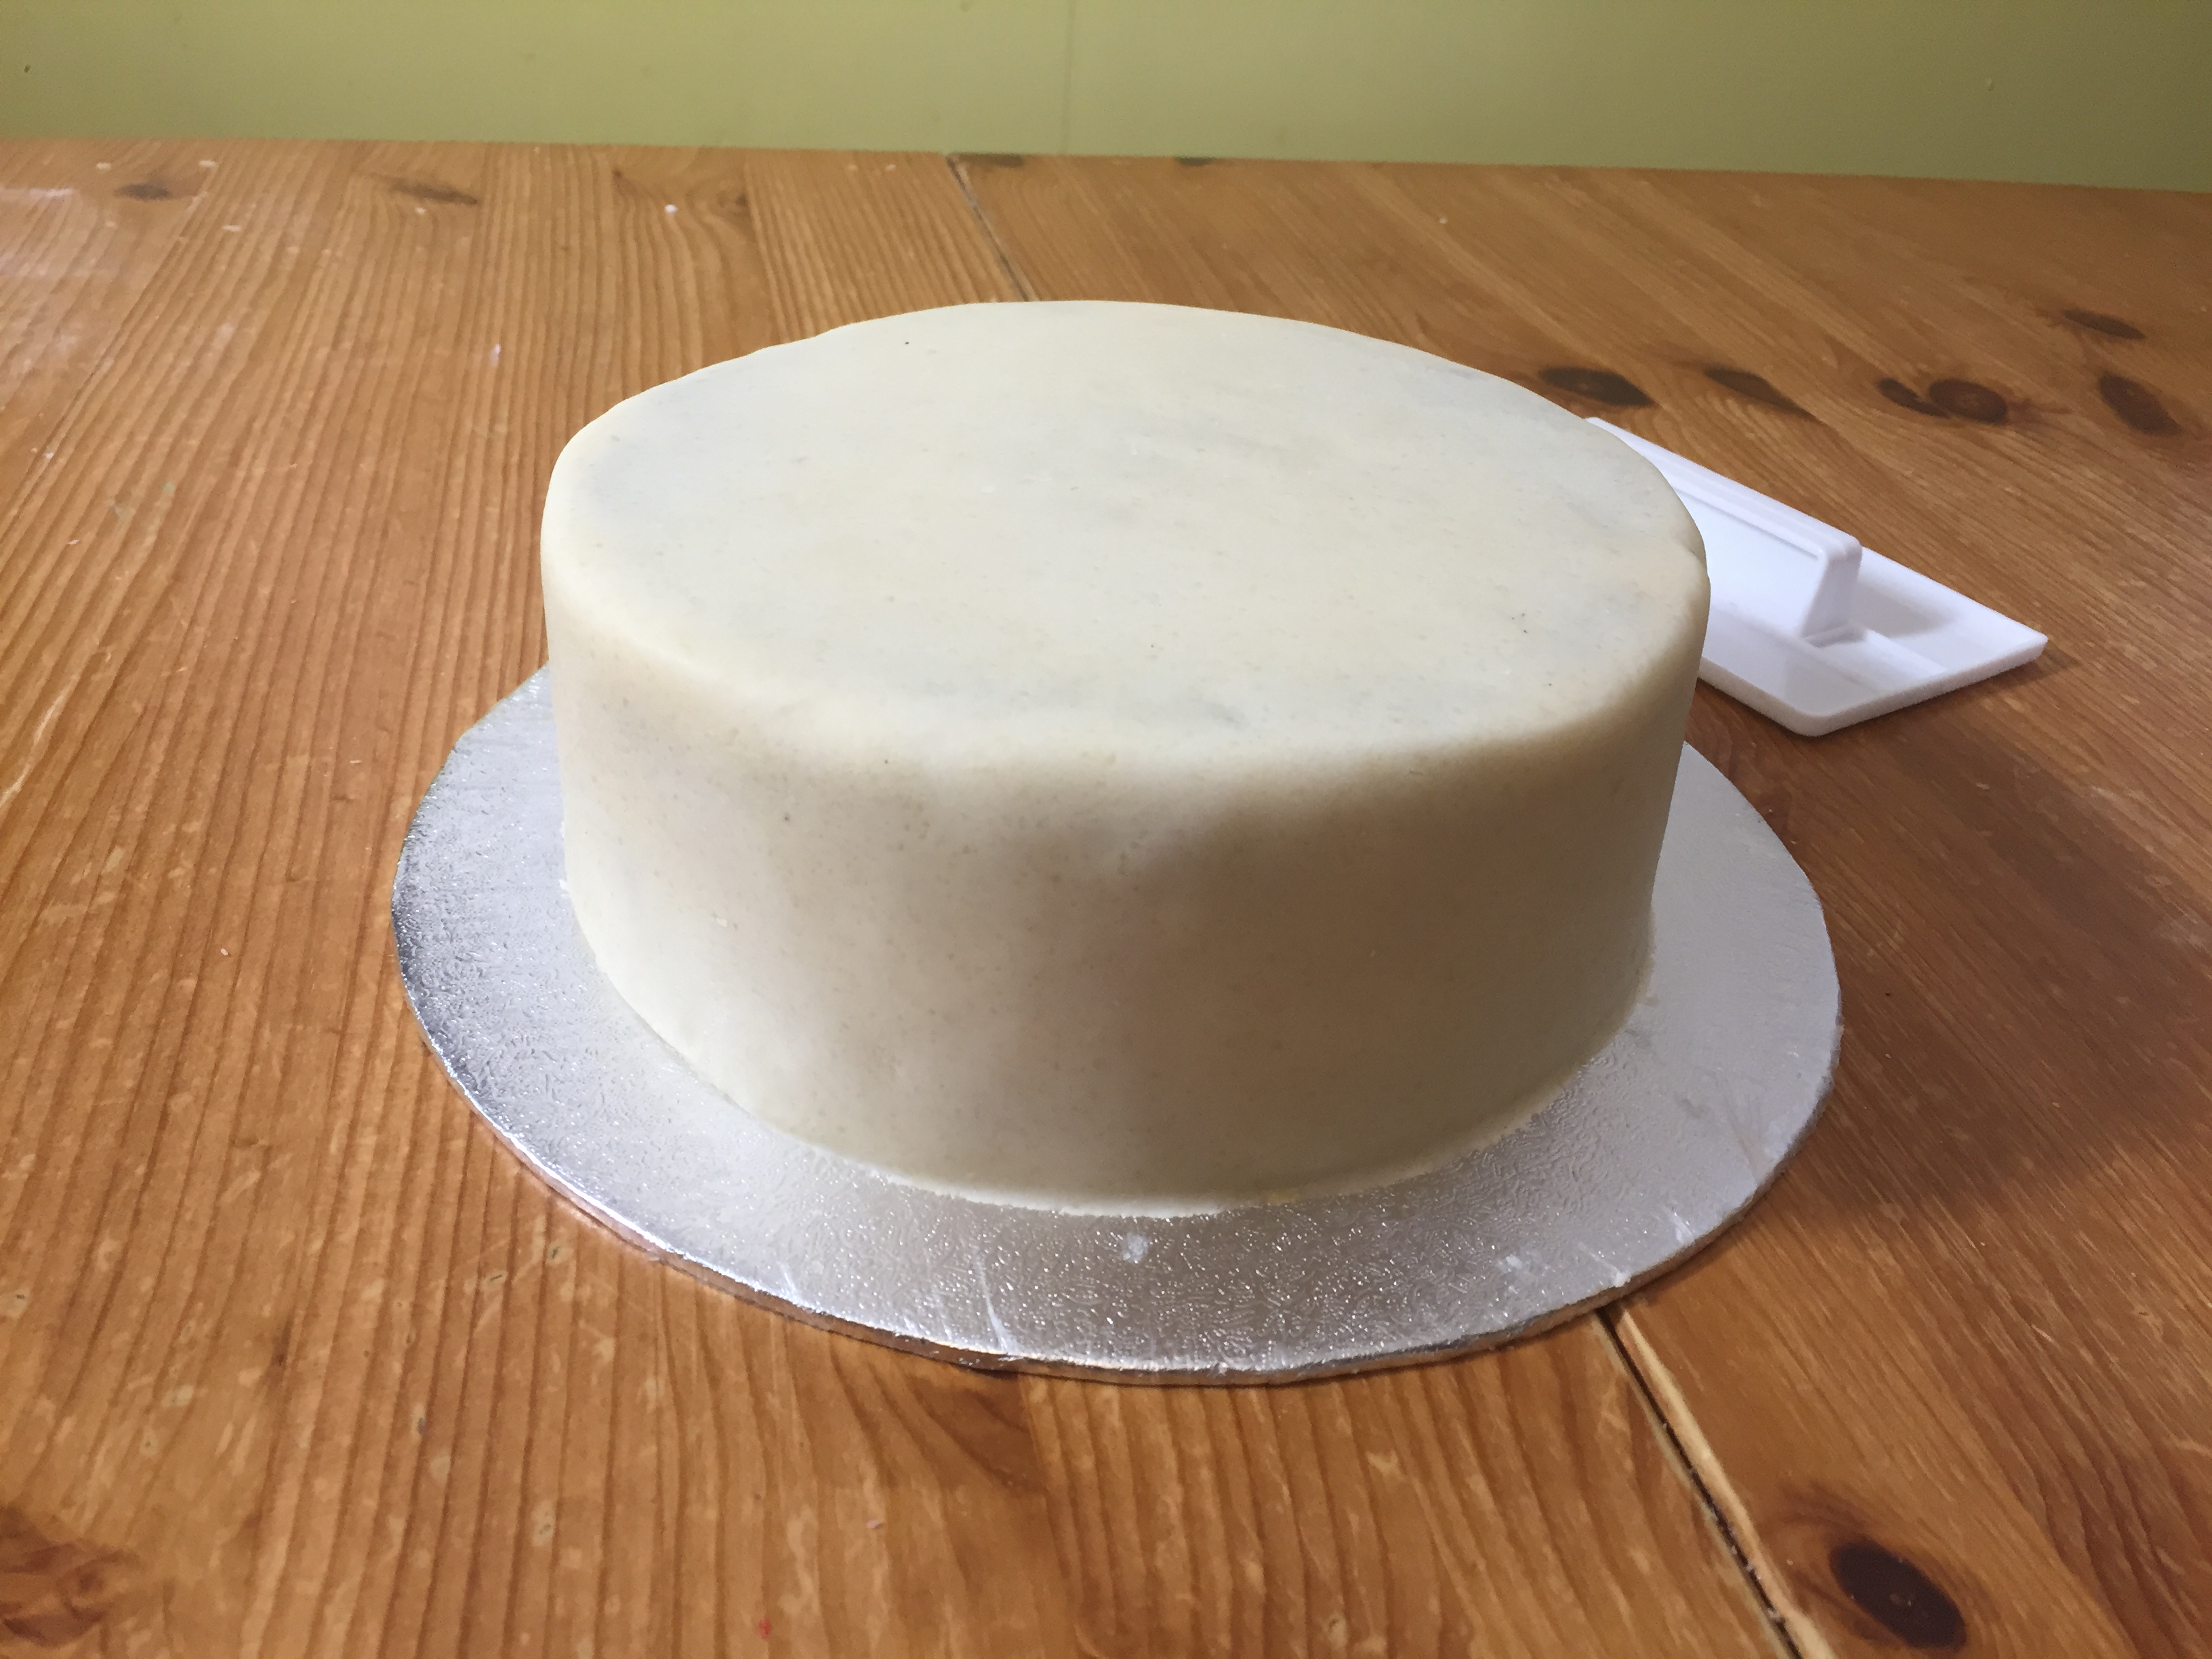 How to cover a fruit cake with fondant